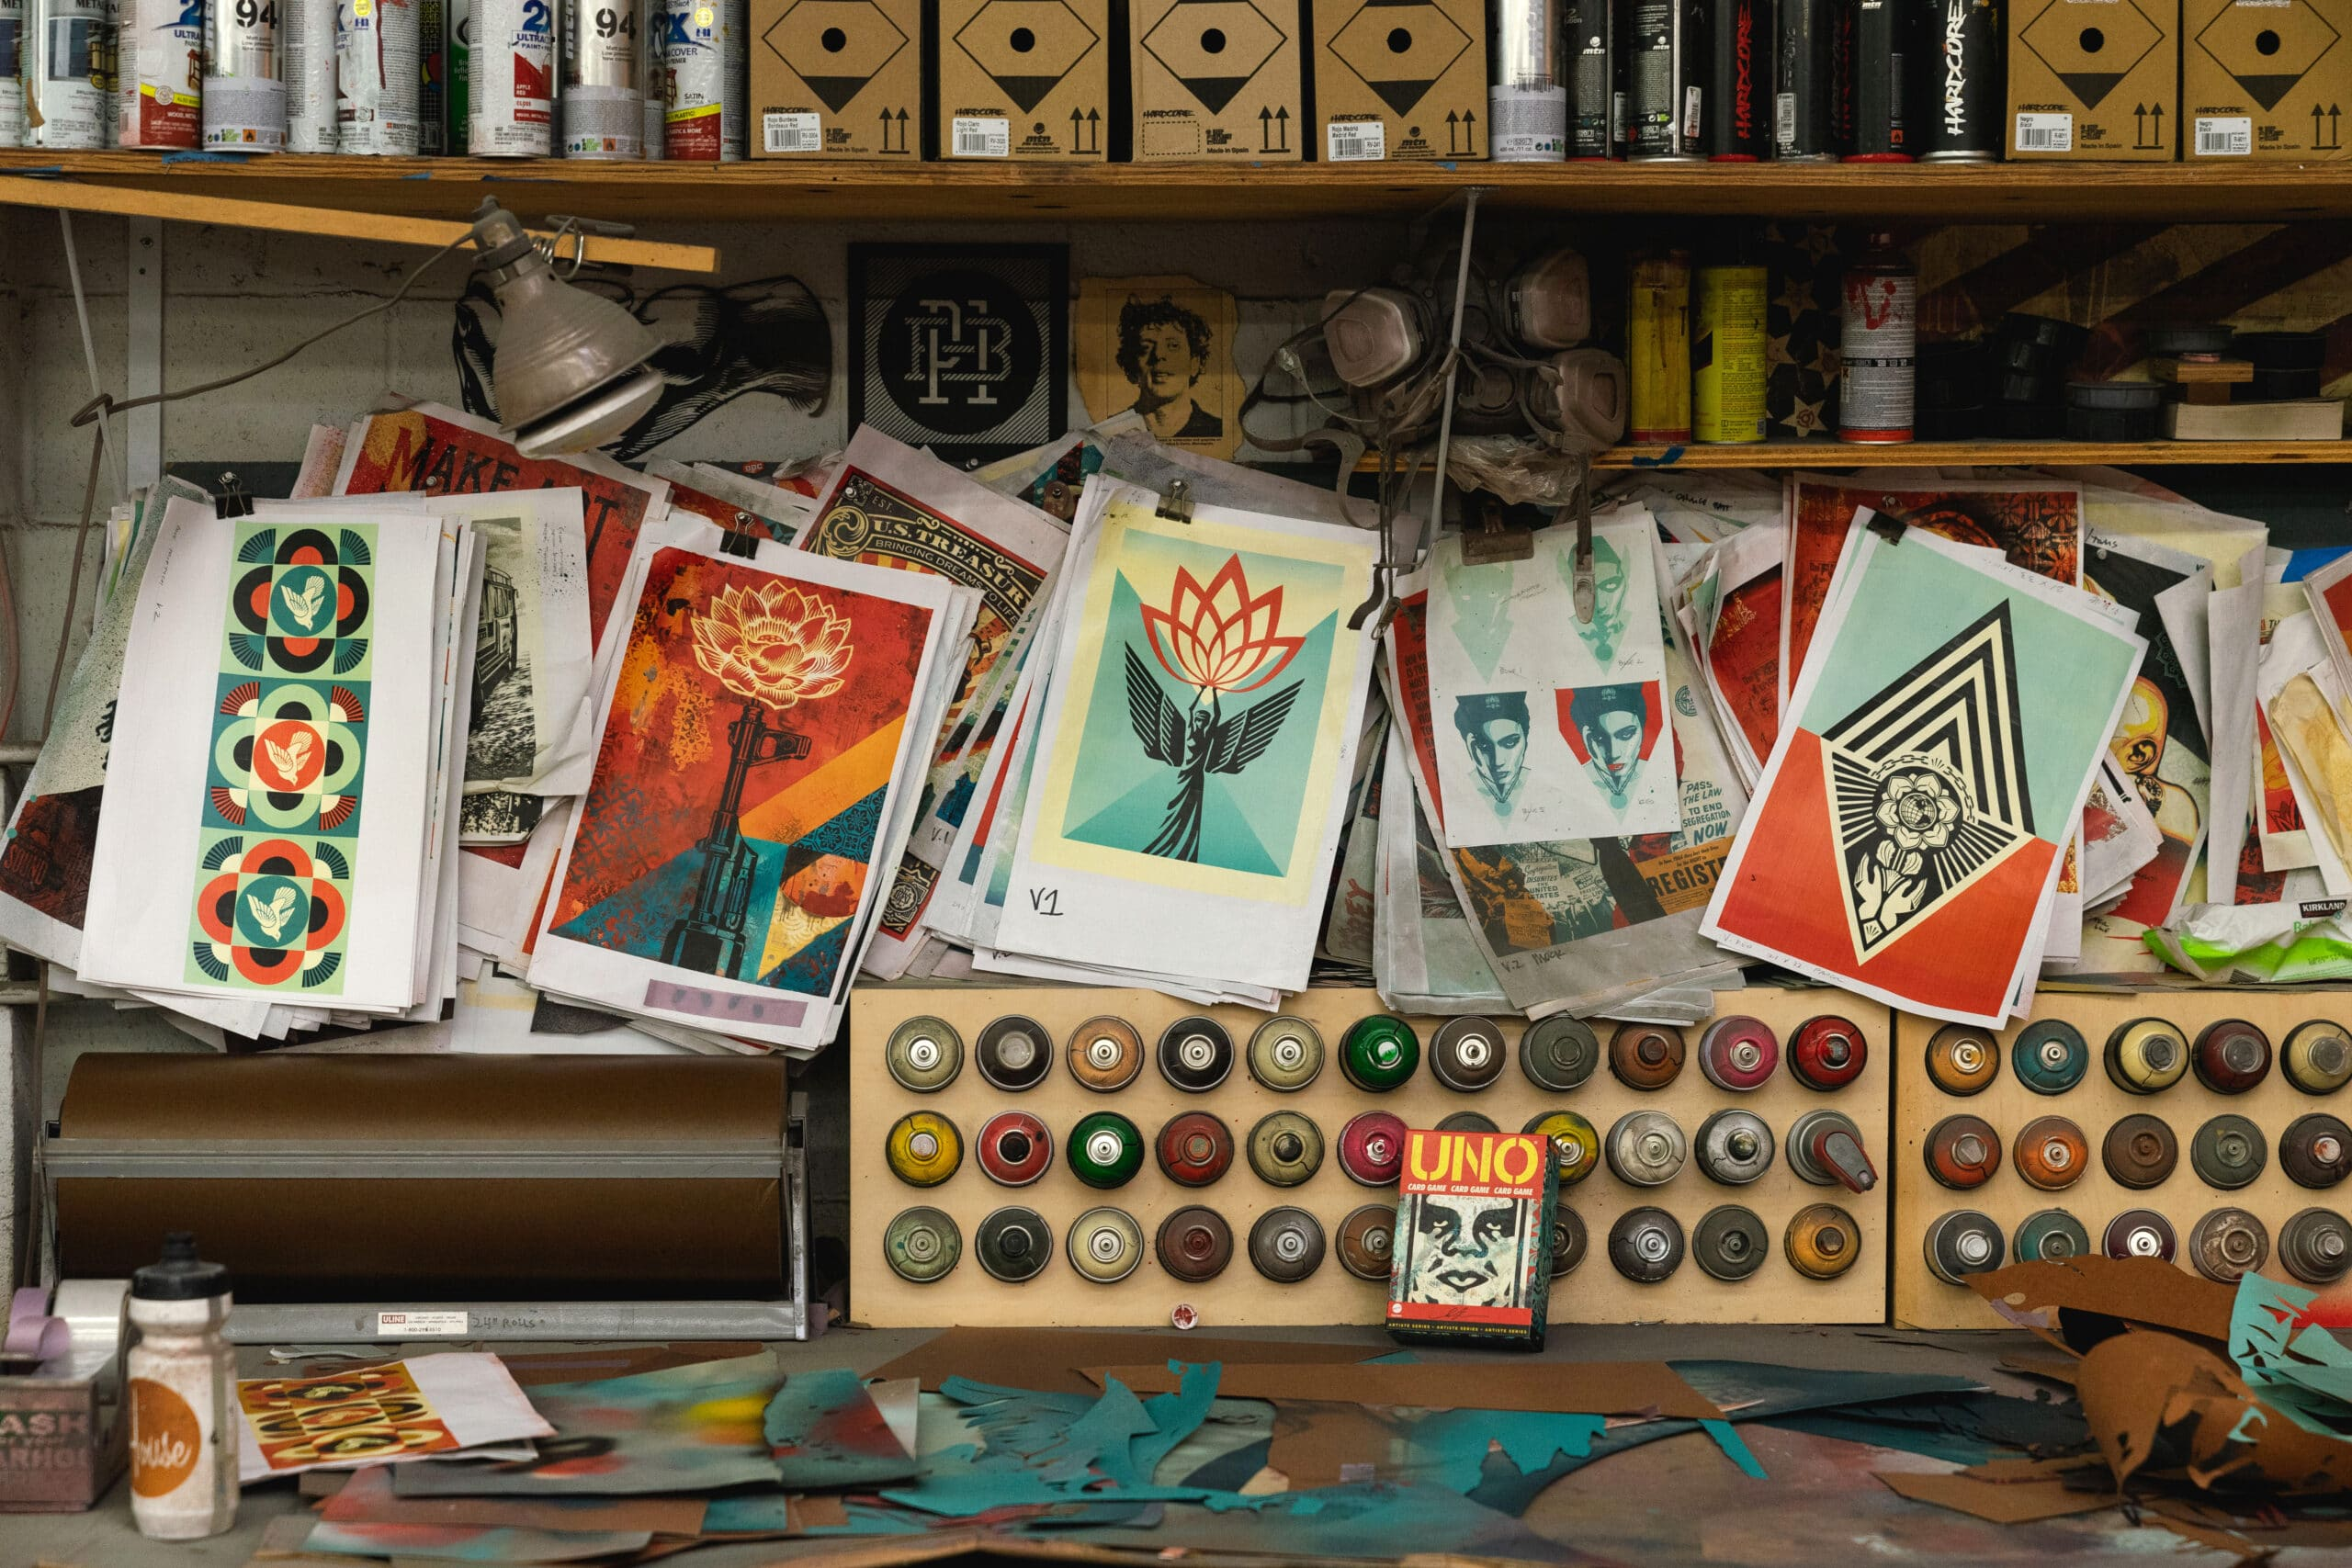 UNO partners with artist Shepard Fairey for a premium deck 19